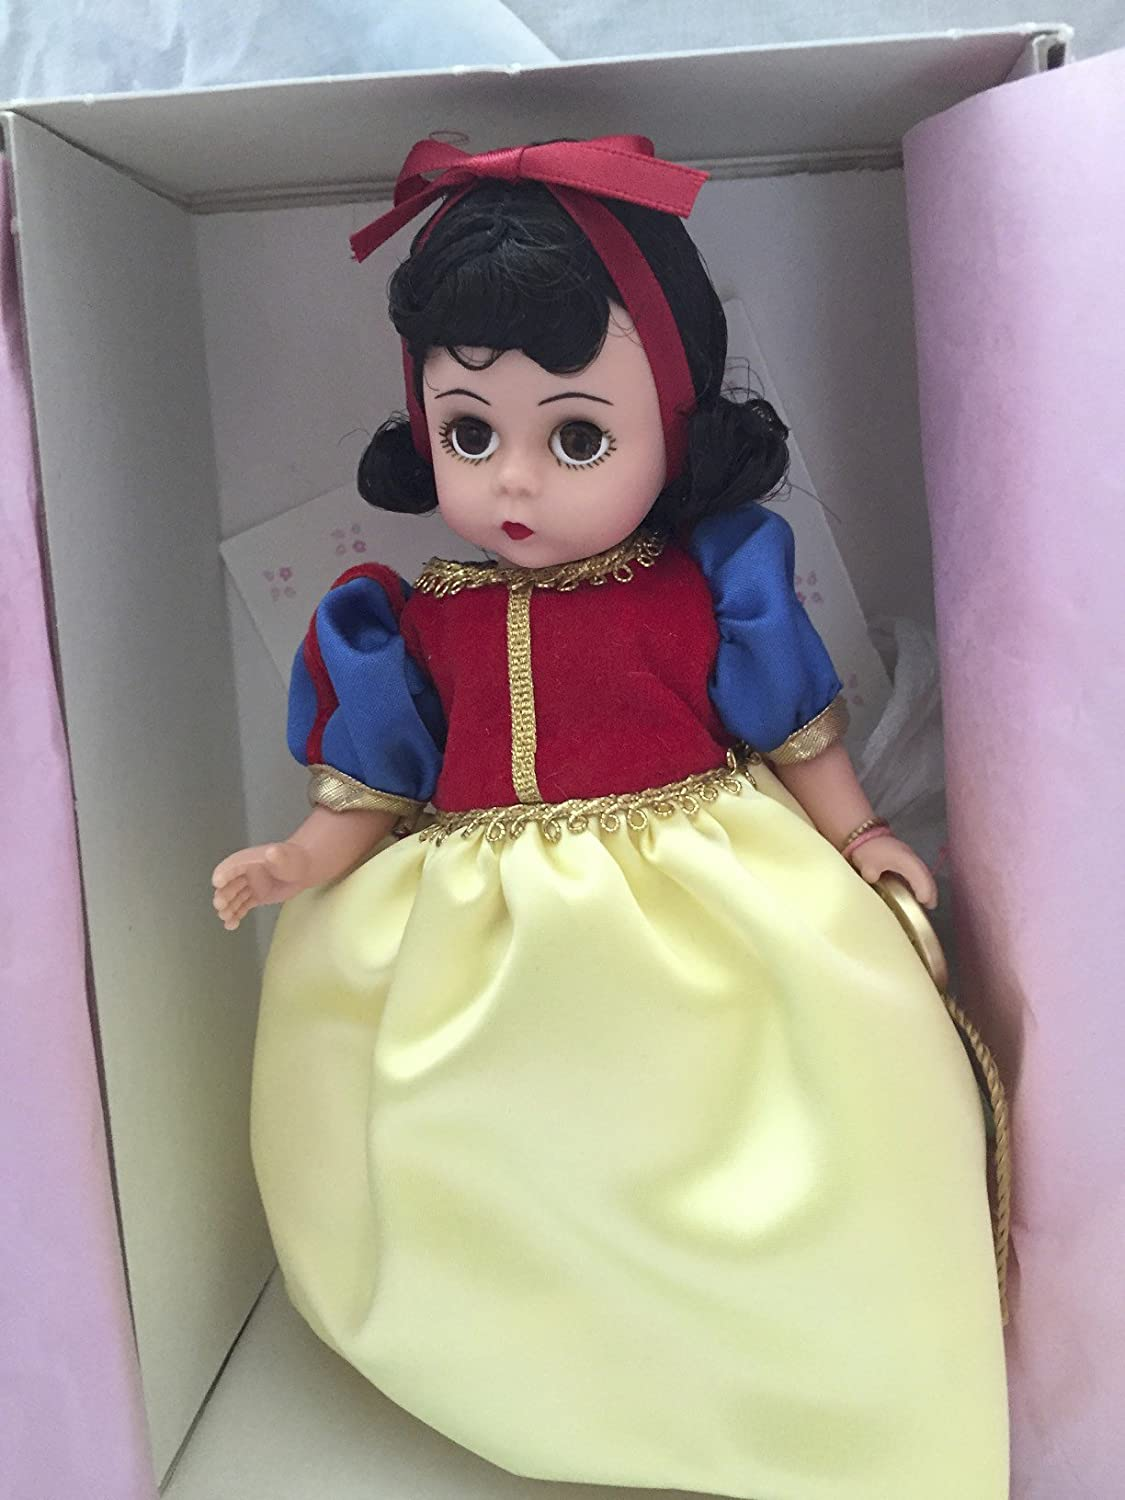 Snow White 8 inch Jointed Wendy Doll by Madame Alexander Madame Alexander Doll Company 13800